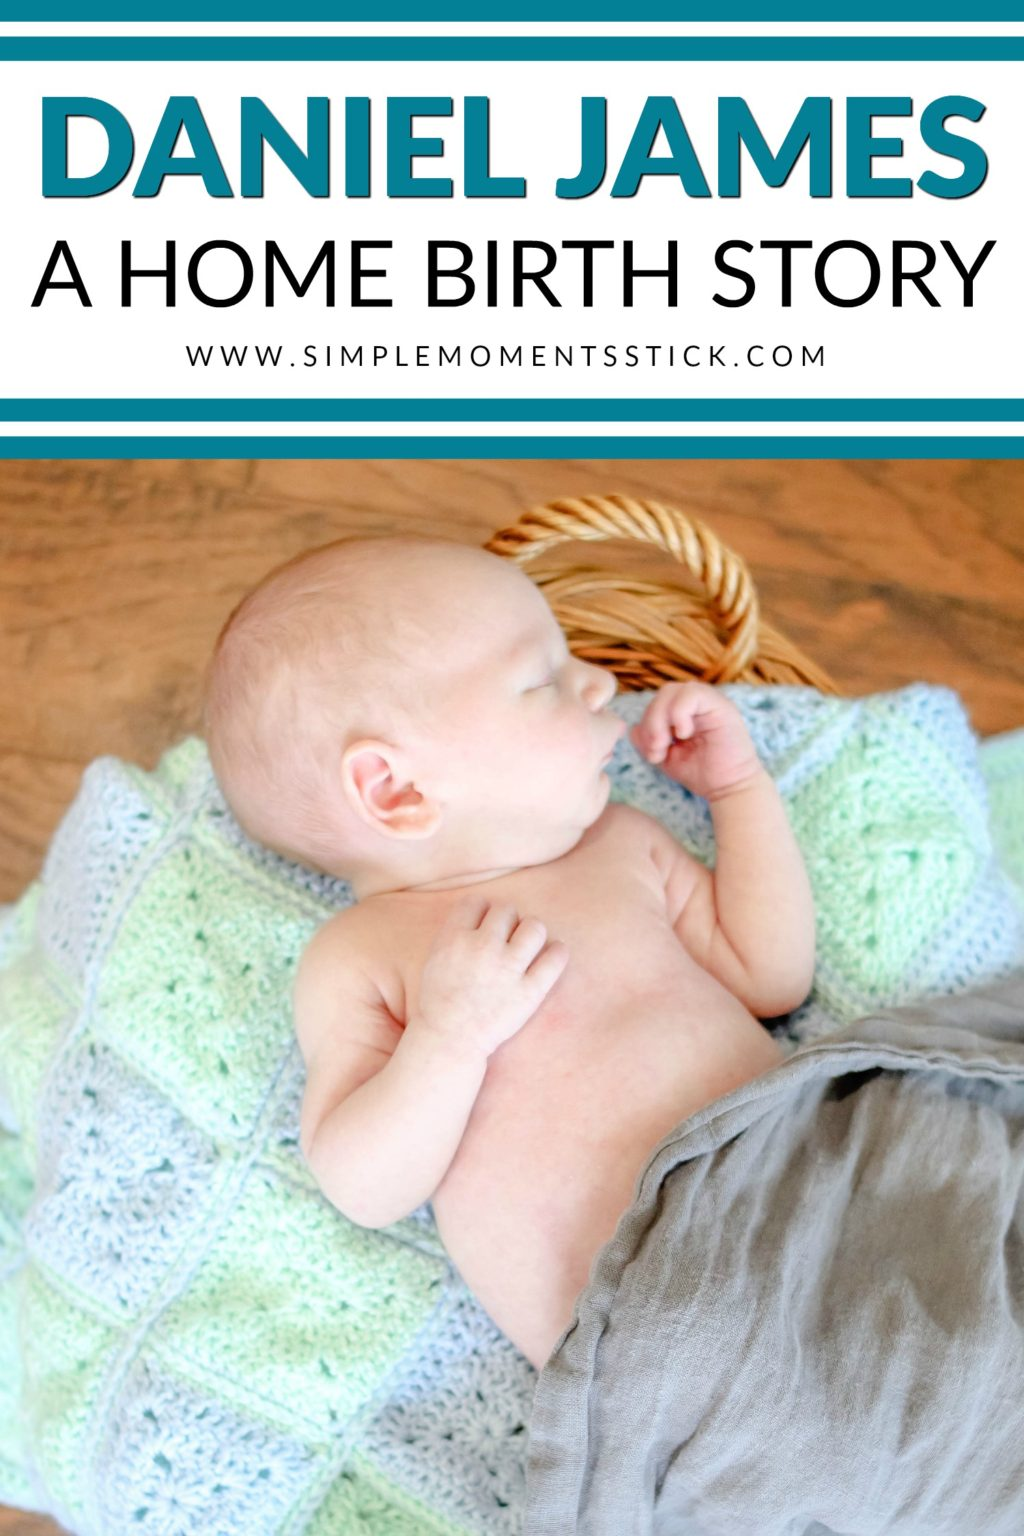 Do you wonder what it's like to have a home birth? This birth story will give you all the details for what it was like for this mama to have her baby at home.